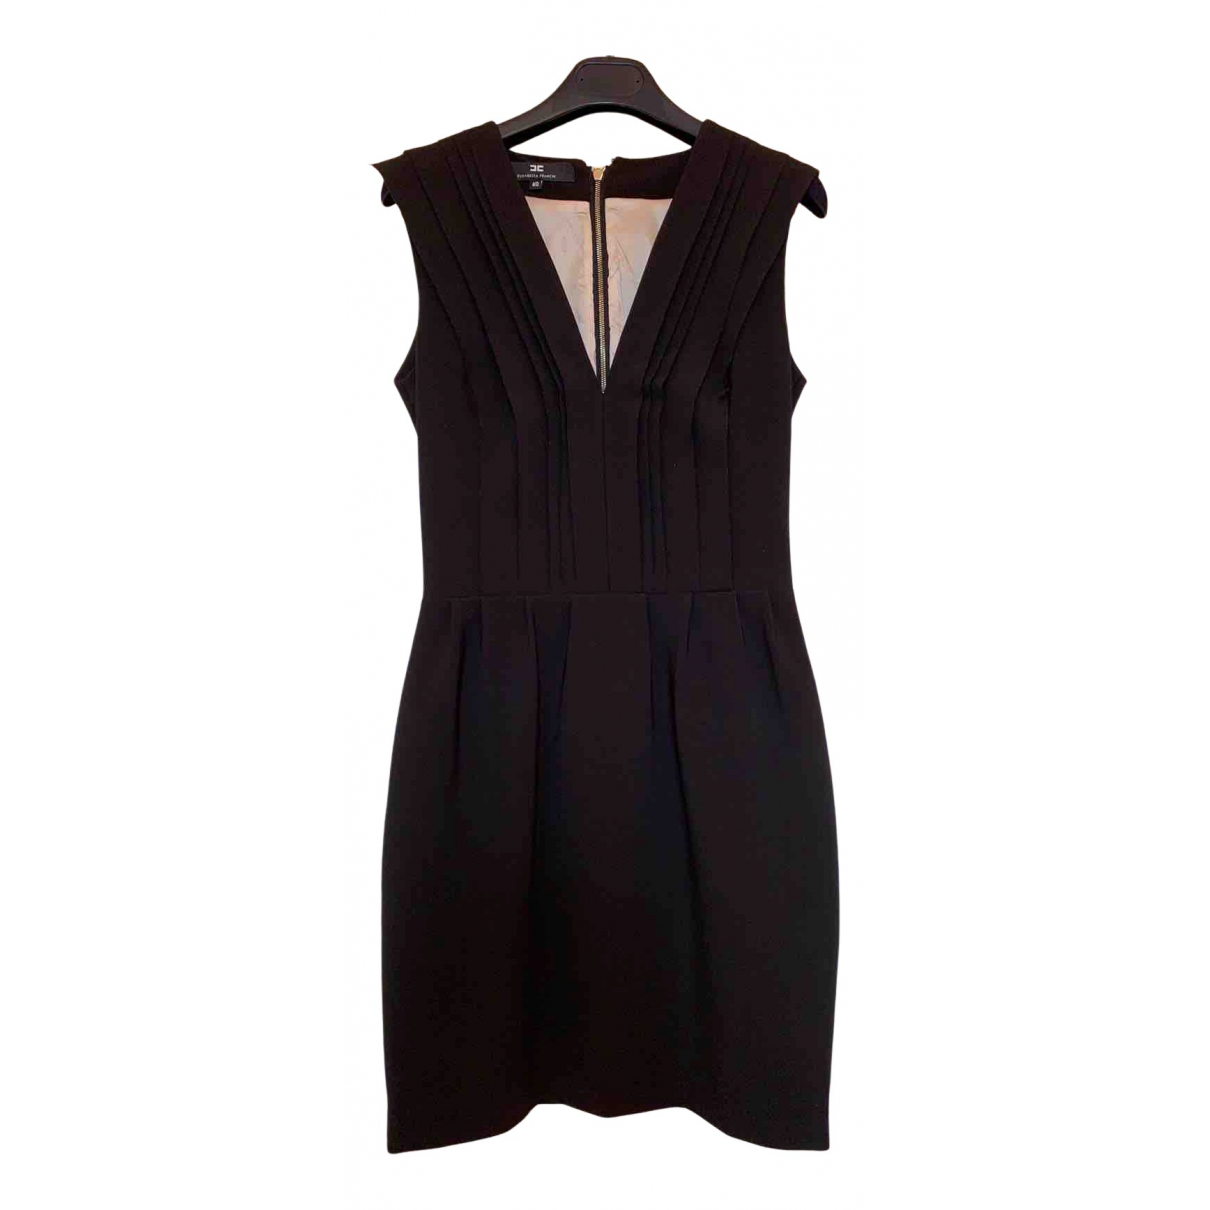 Elisabetta Franchi N Burgundy dress for Women 40 IT